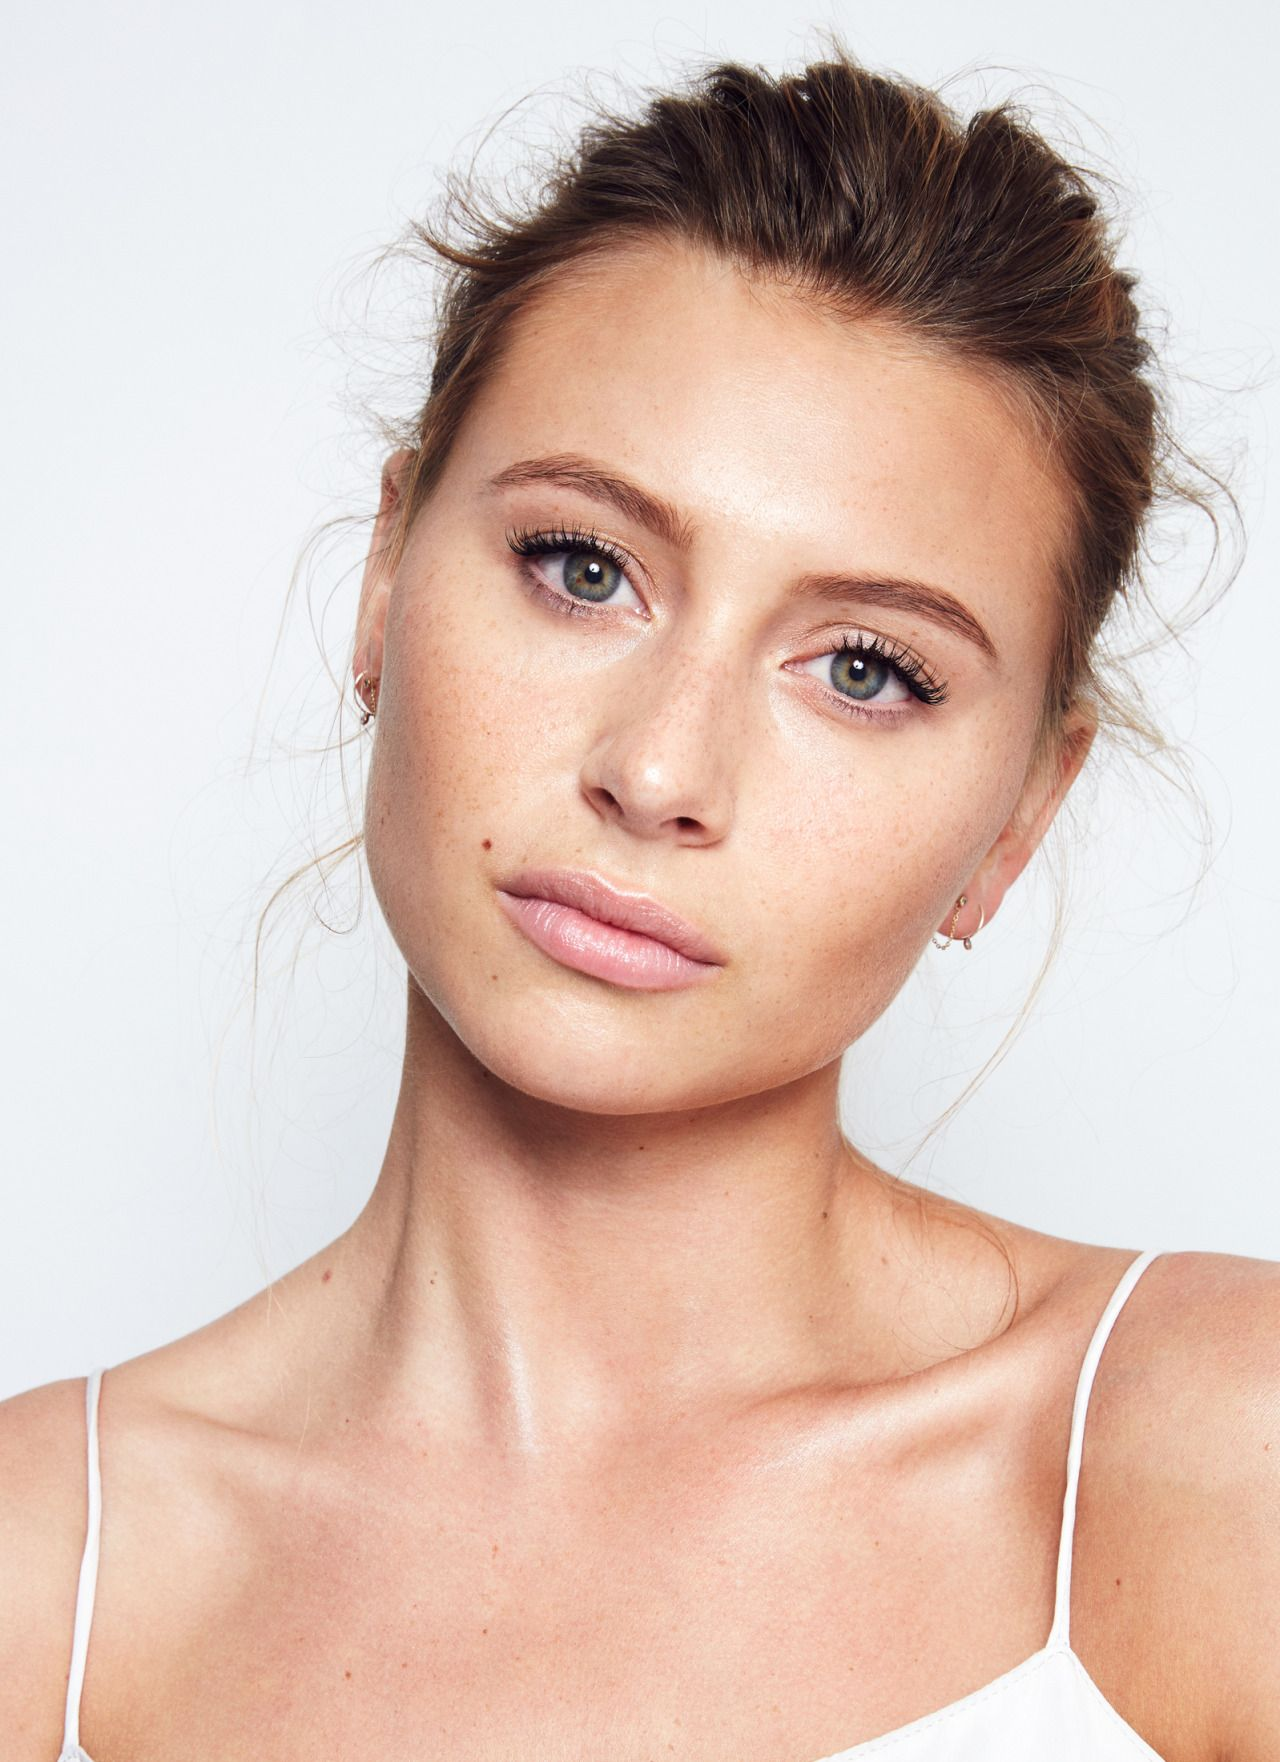 Aly Alyson Michalka The Beauty Manifesto Photoshoot 2015